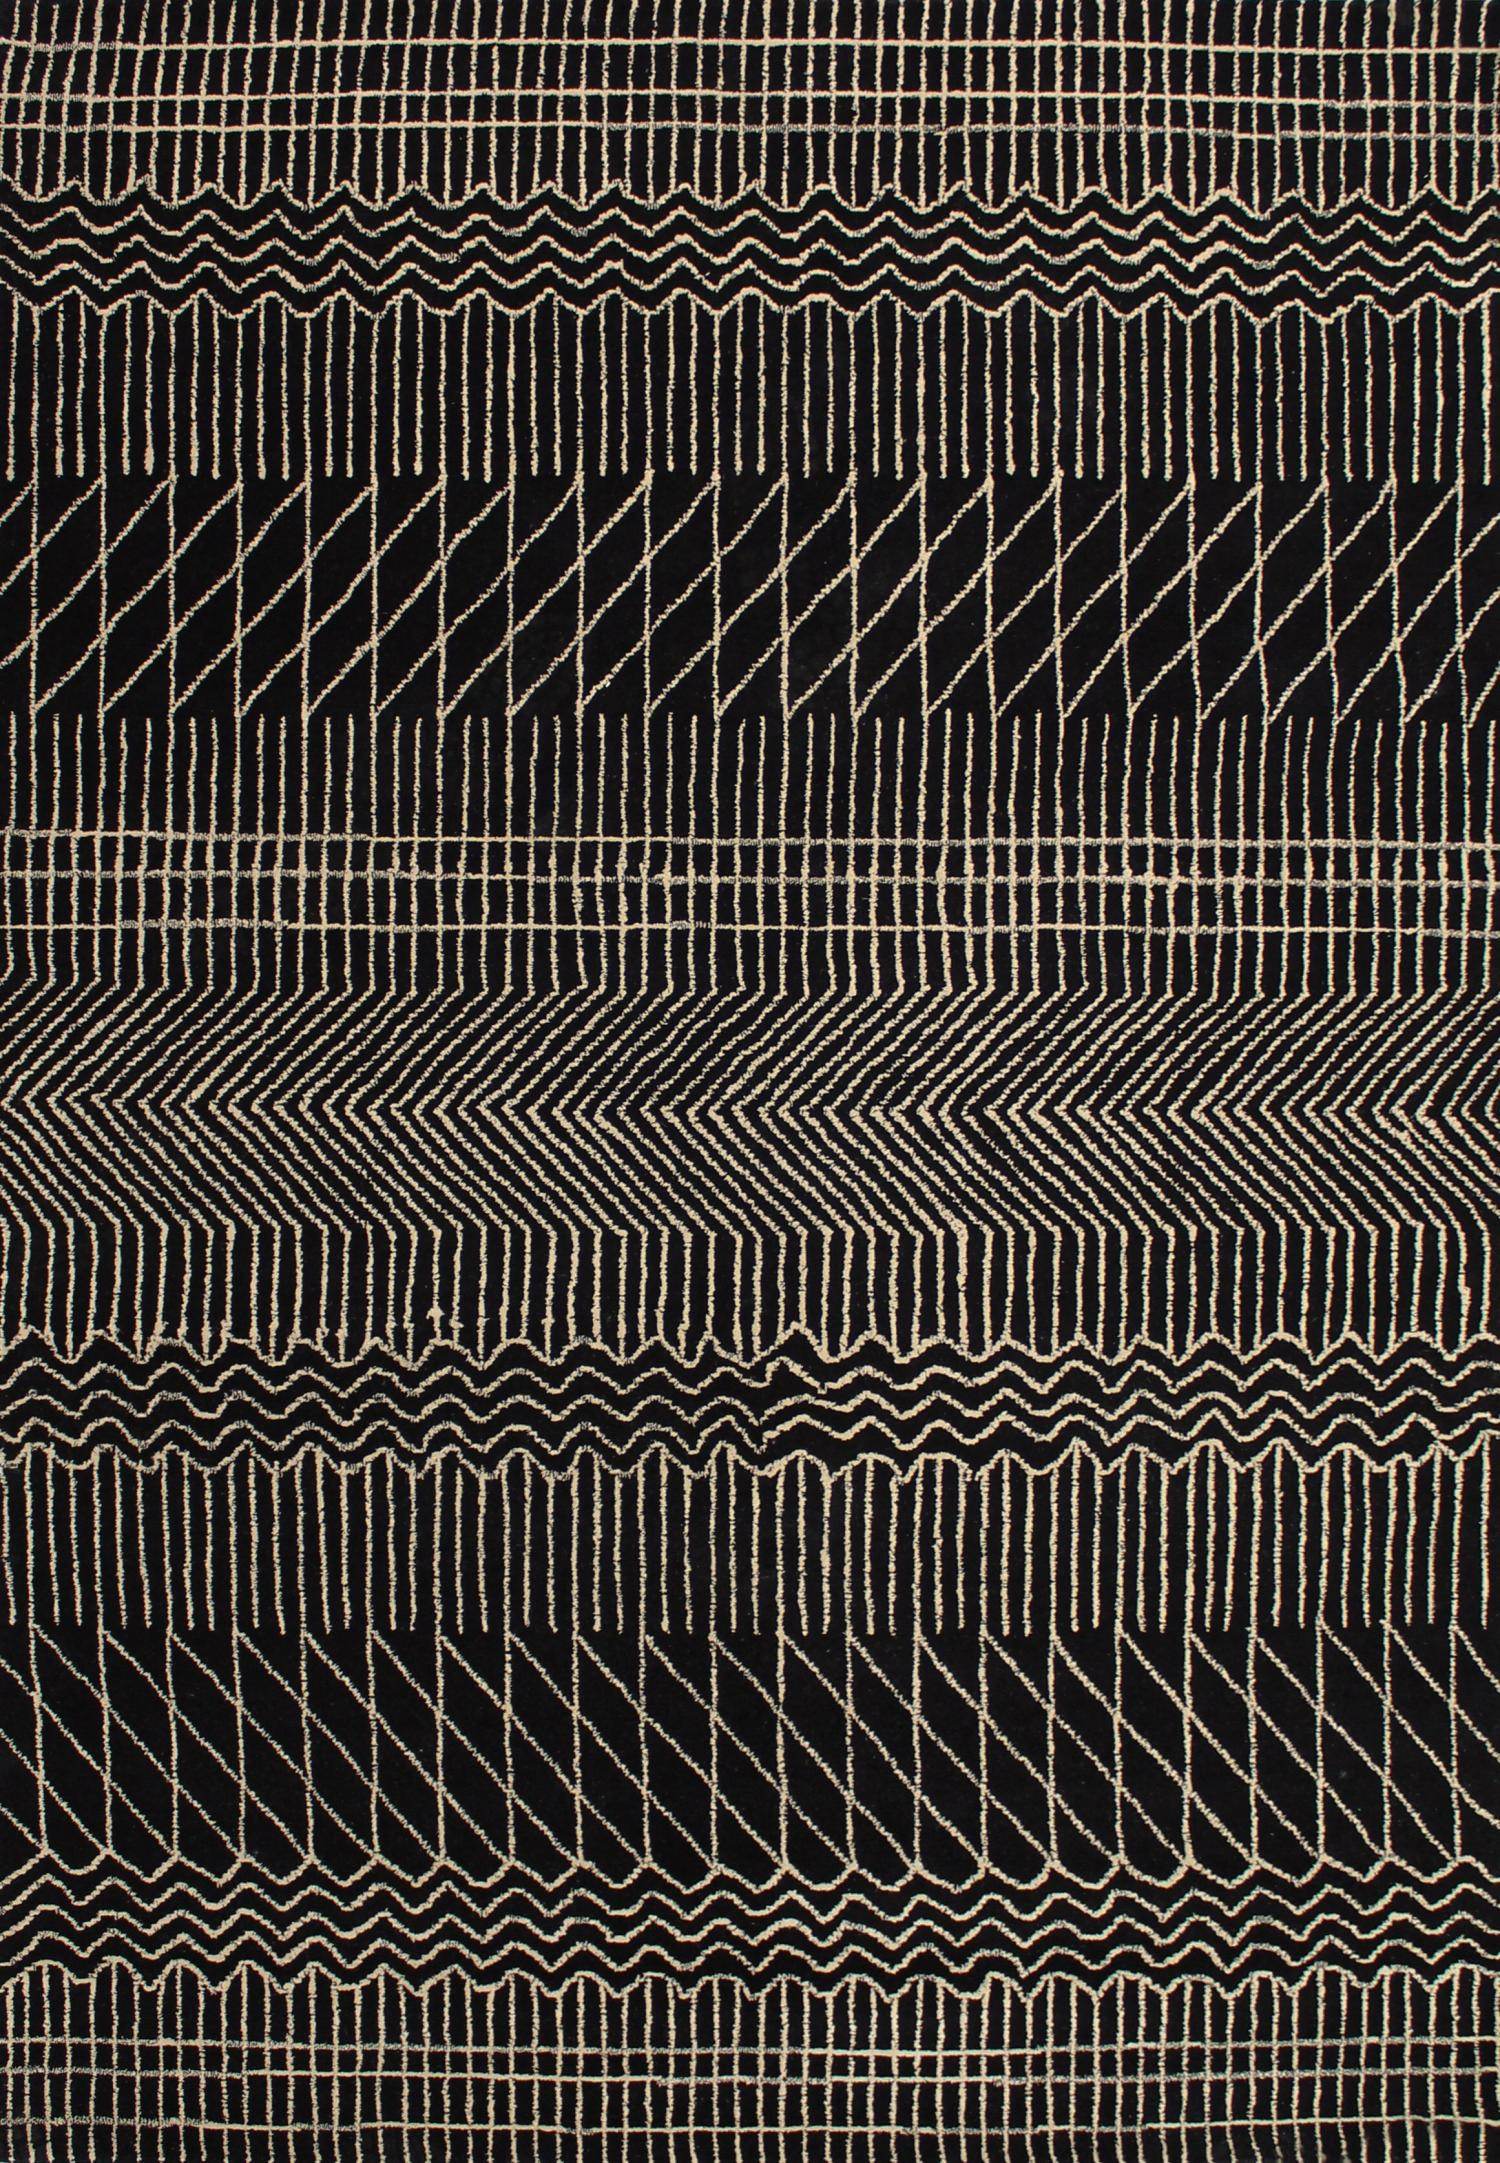 braid-kilim-broken-lines-black-hand-woven-flat-weave-pure-wool-rugs-perth